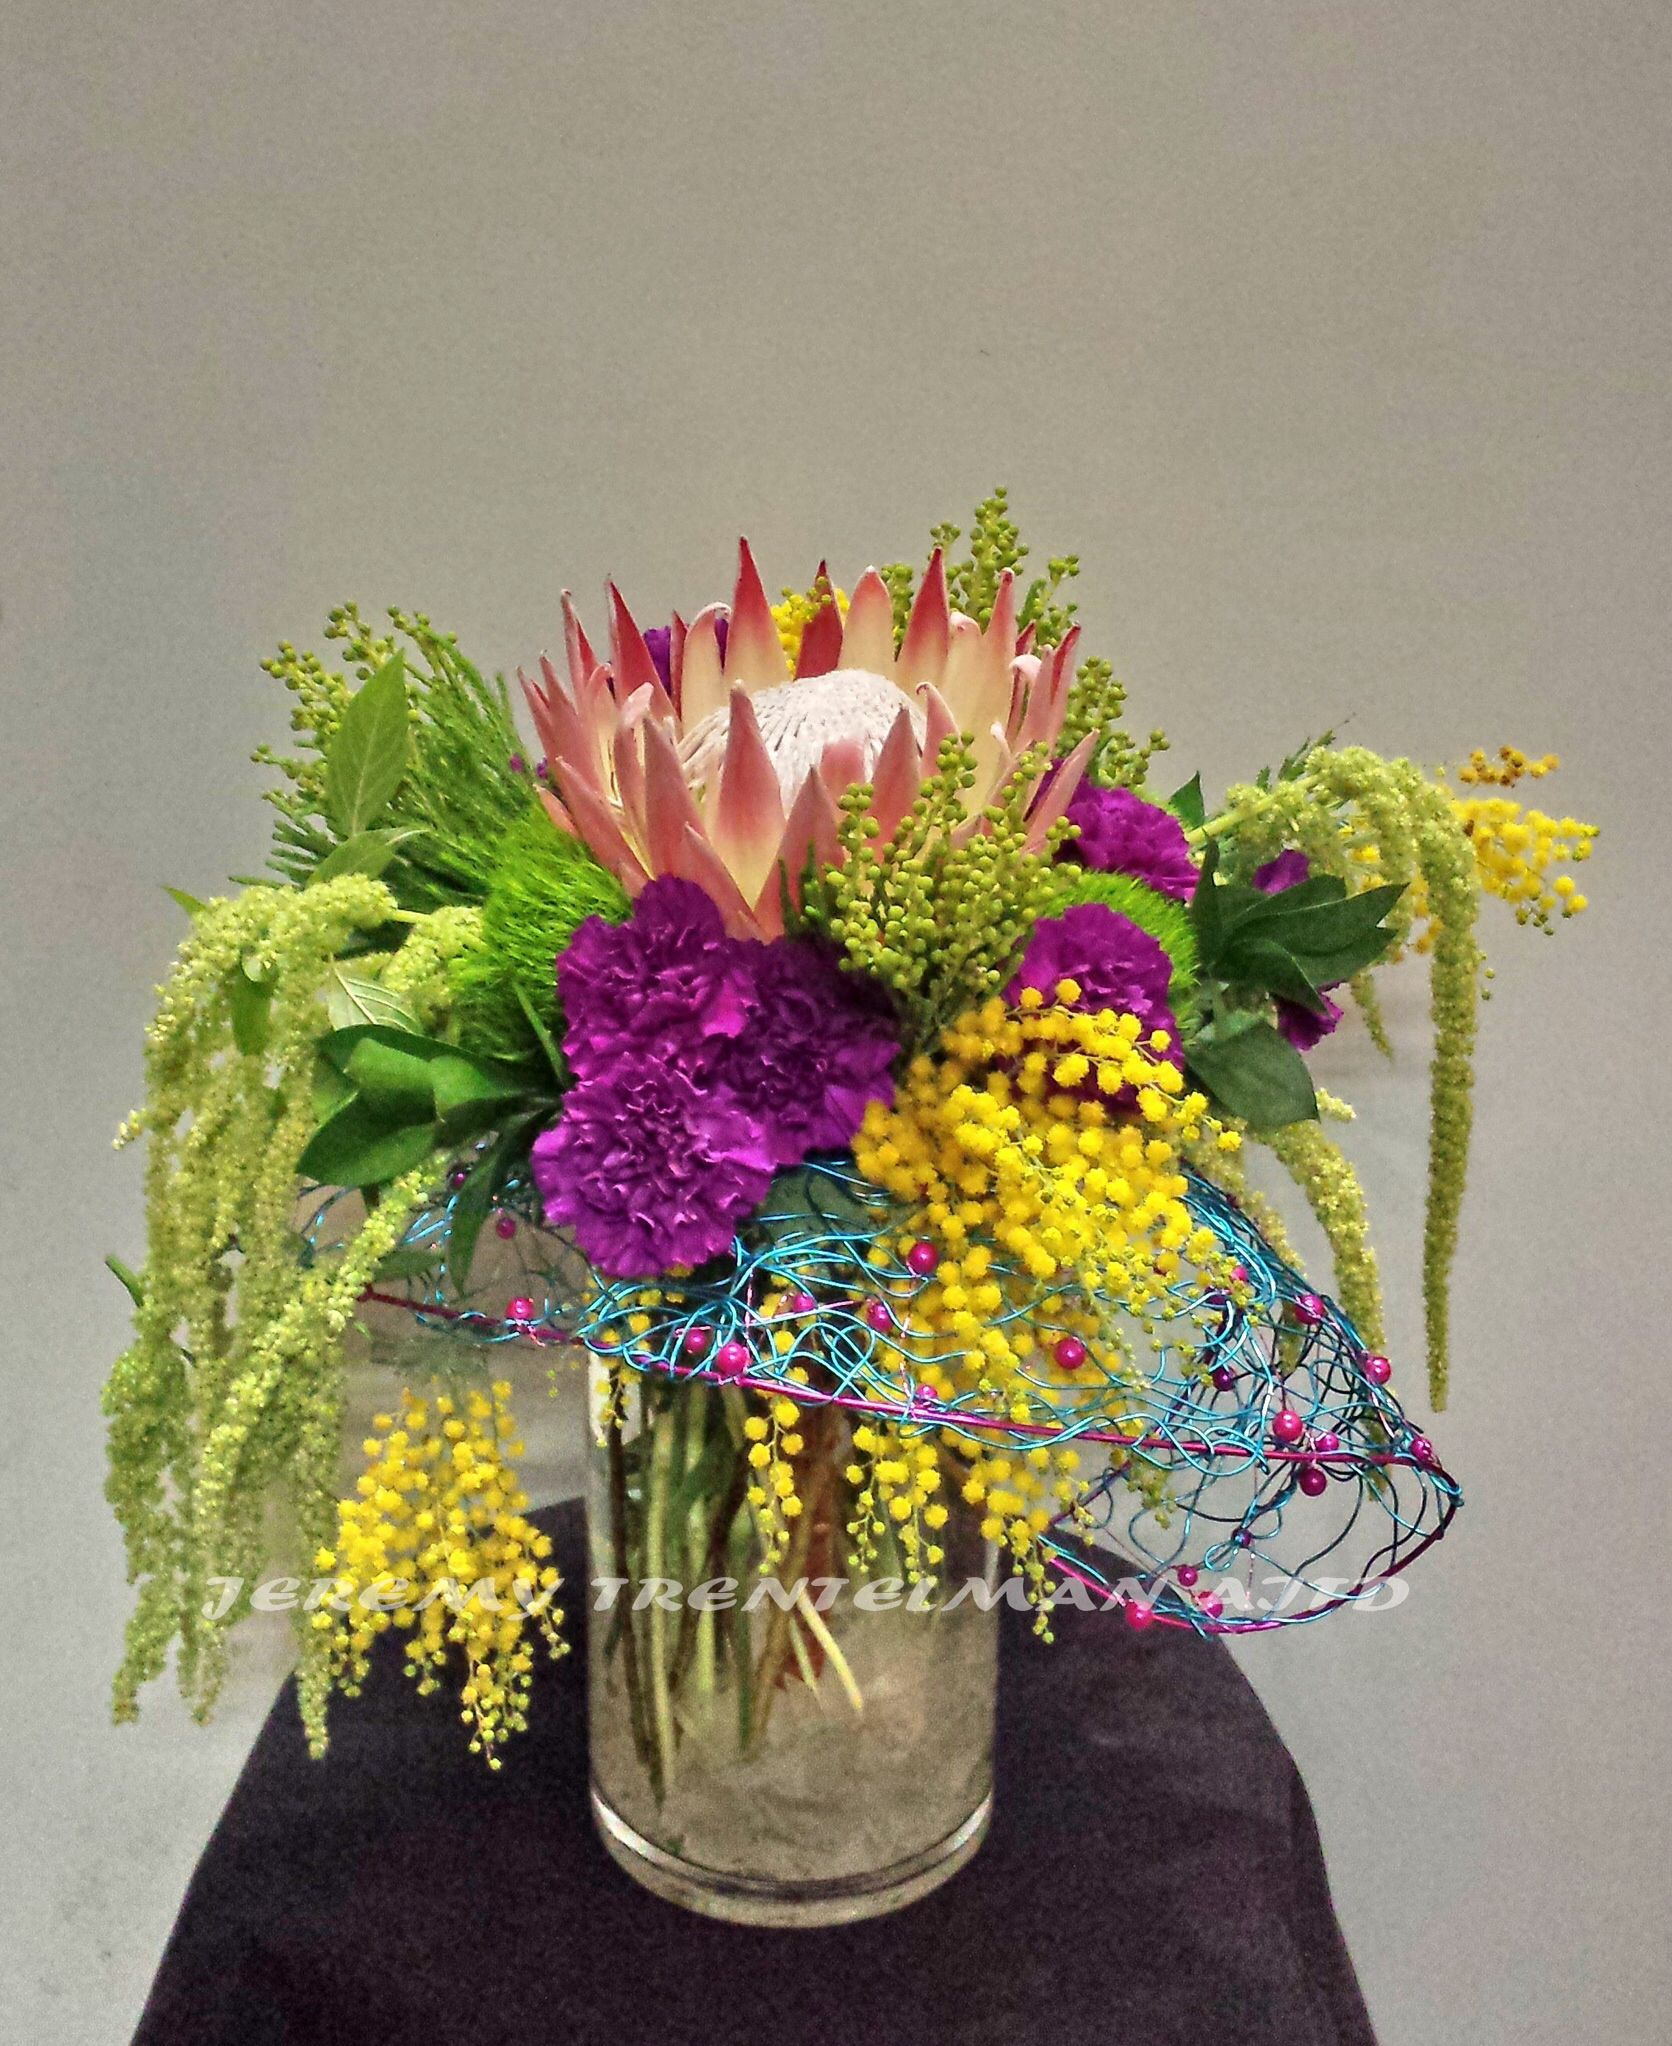 King Protea Hanging Amaranthus Carnations Bresalia Acacia And Decorative Wire Armature Tall Flower Arrangements Flower Arrangements Tall Flowers